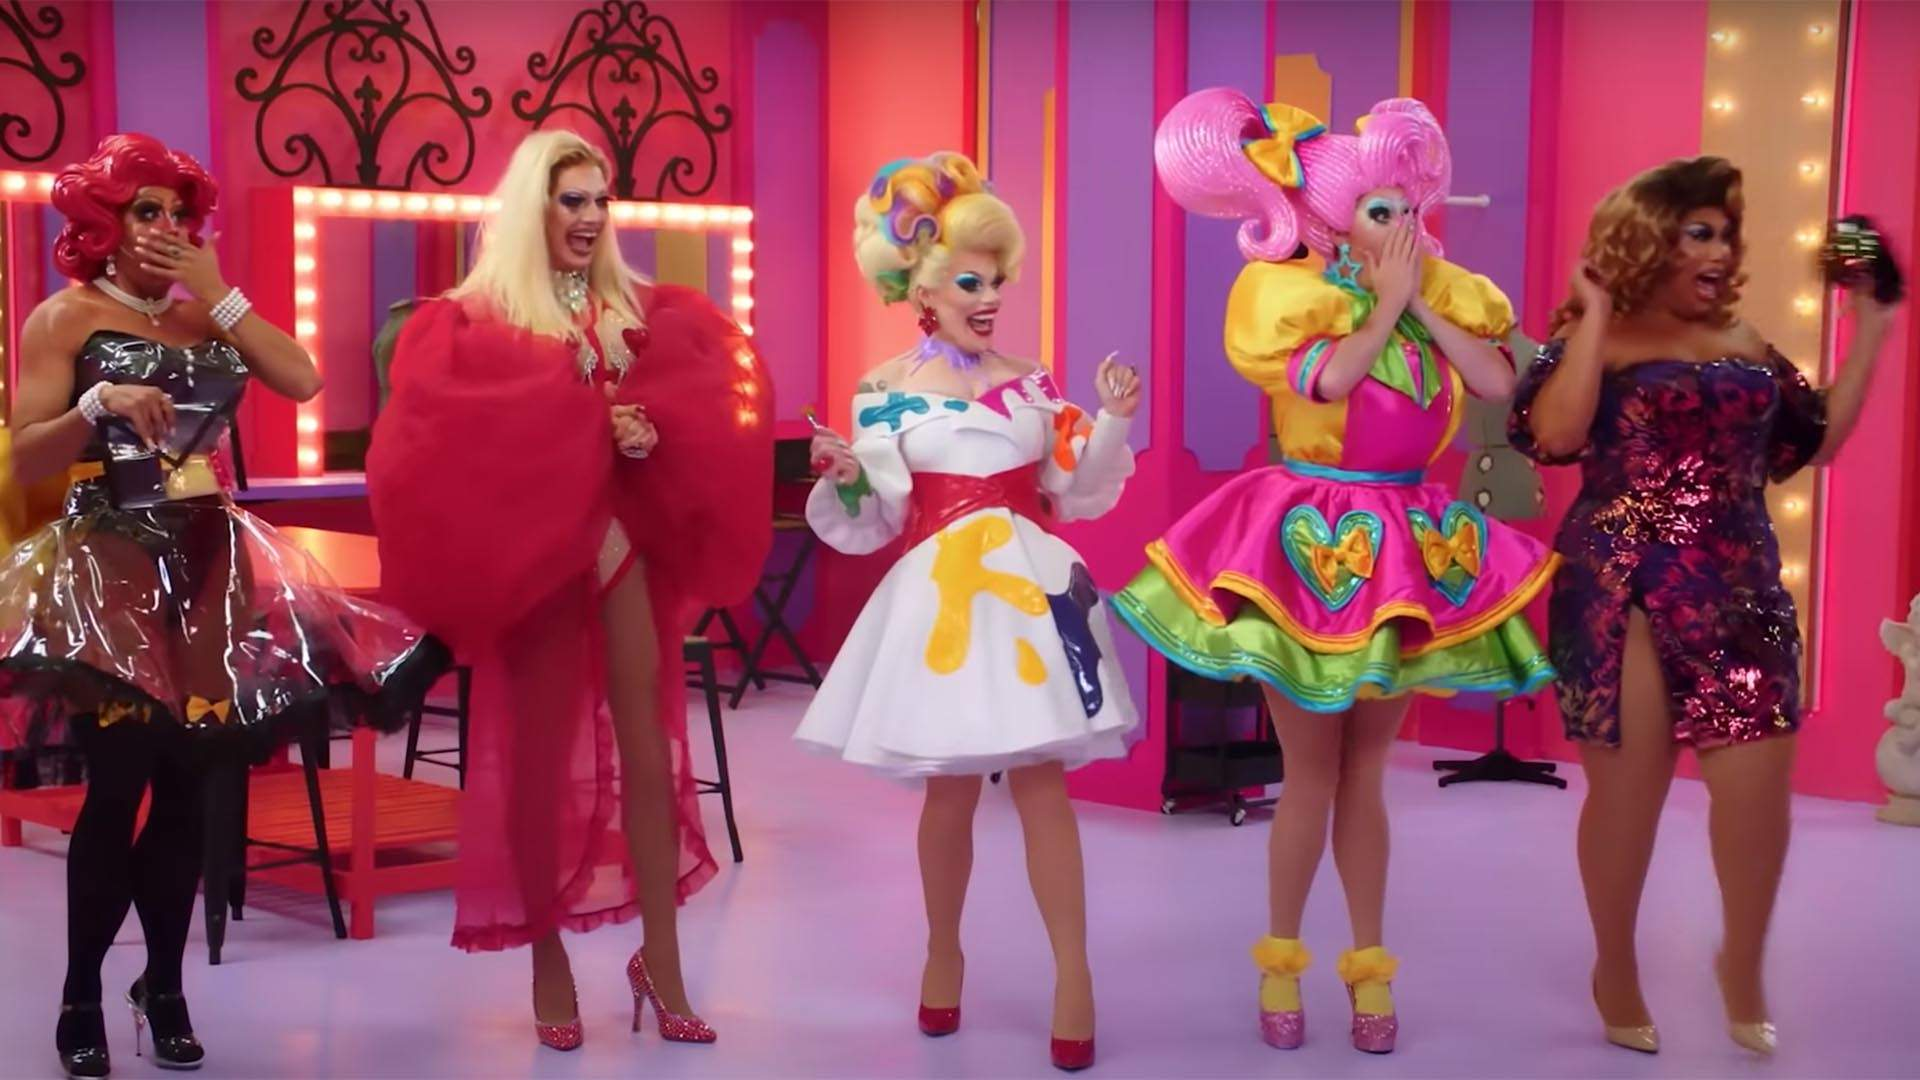 The 'RuPaul's Drag Race Down Under' Trailer Is Here with Eye-Catching Outfits and Ample Drama